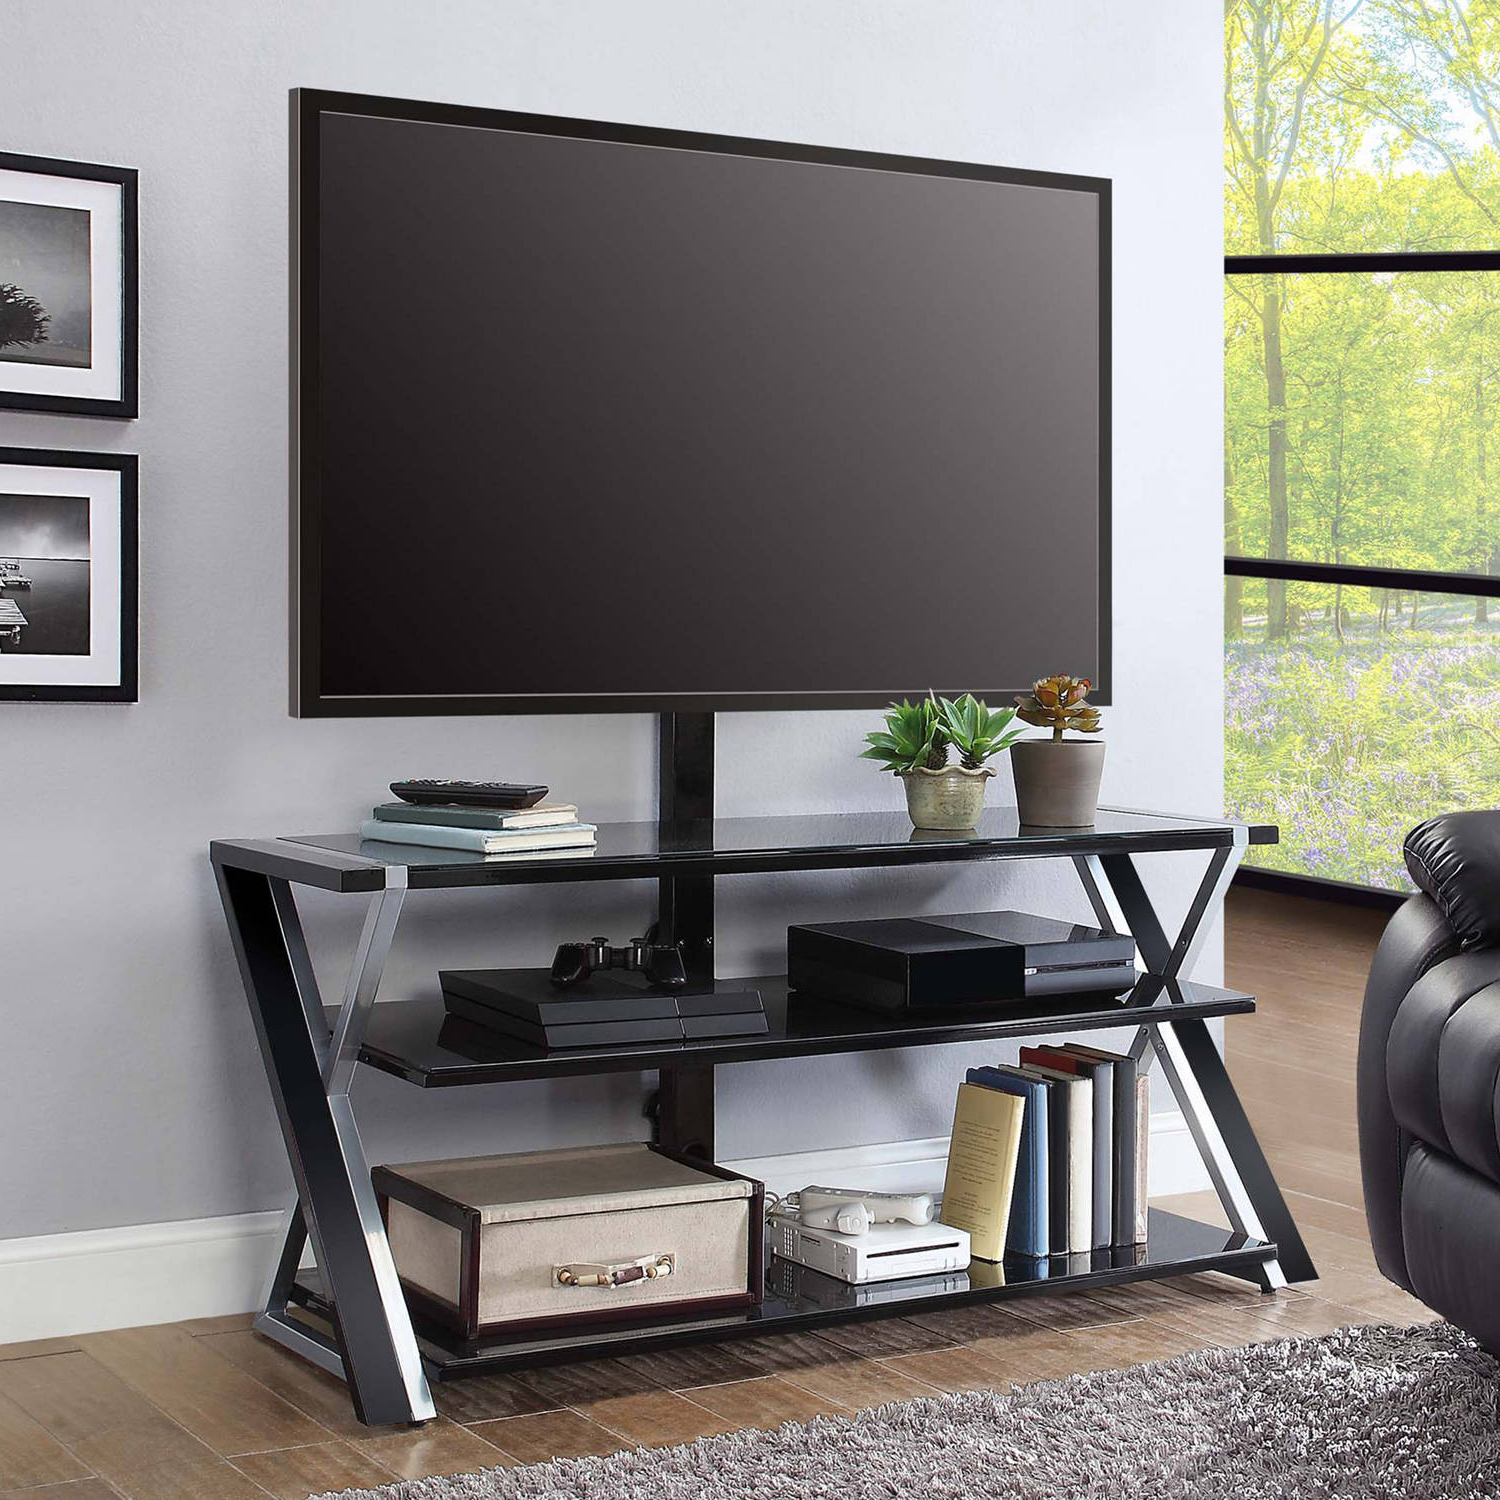 """Whalen Xavier 3 In 1 Tv Stand For Tvs Up To 70"""", With 3 Display In Walton Grey 60 Inch Tv Stands (View 19 of 20)"""